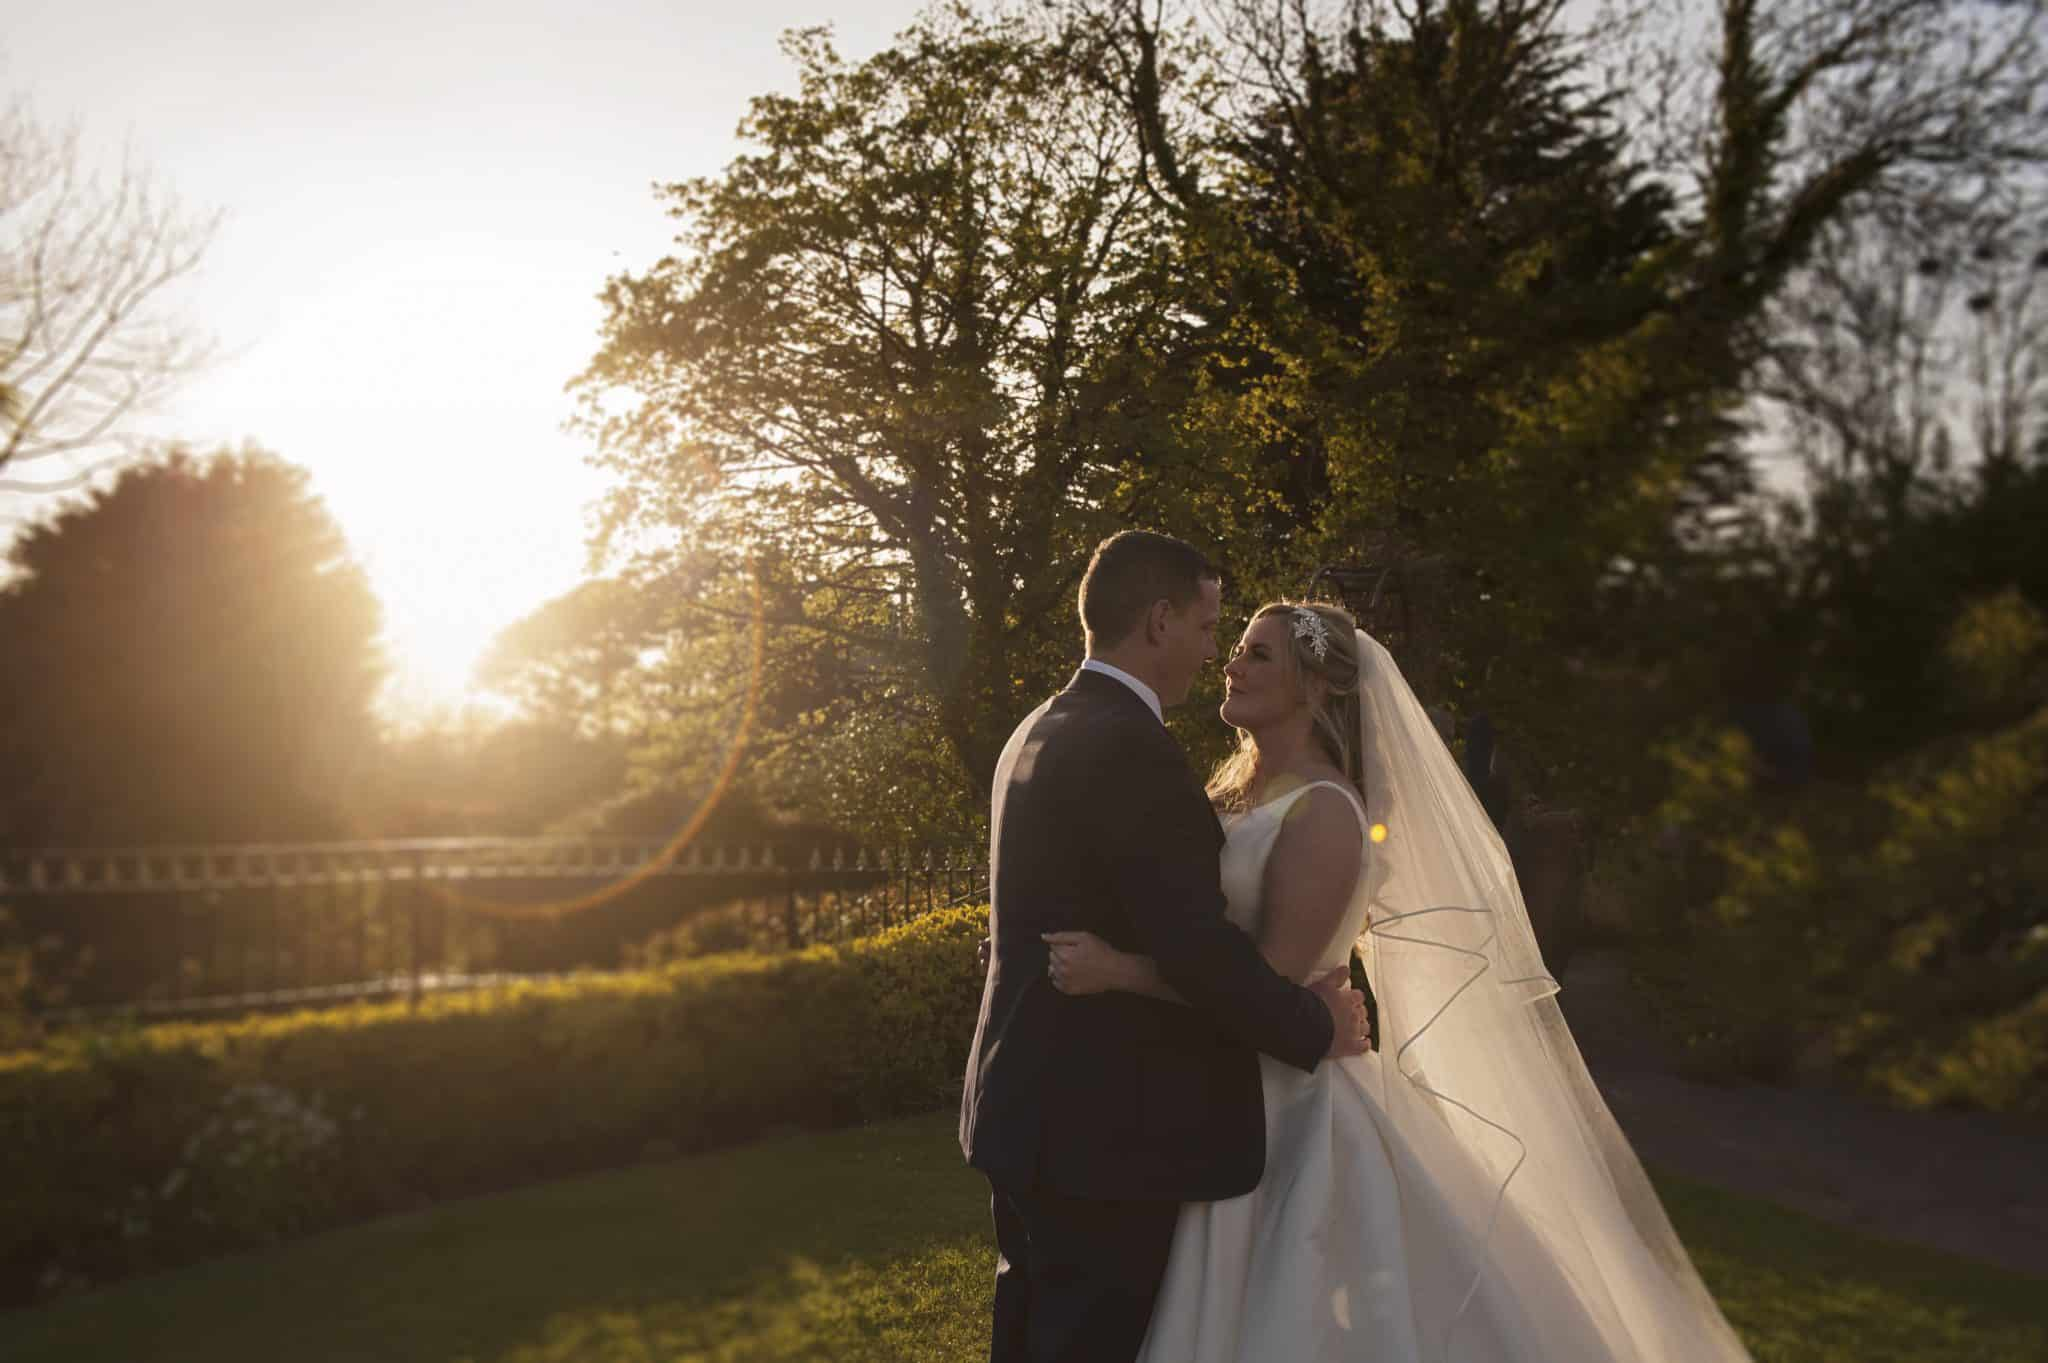 Bride & Groom stood in garden at sunset